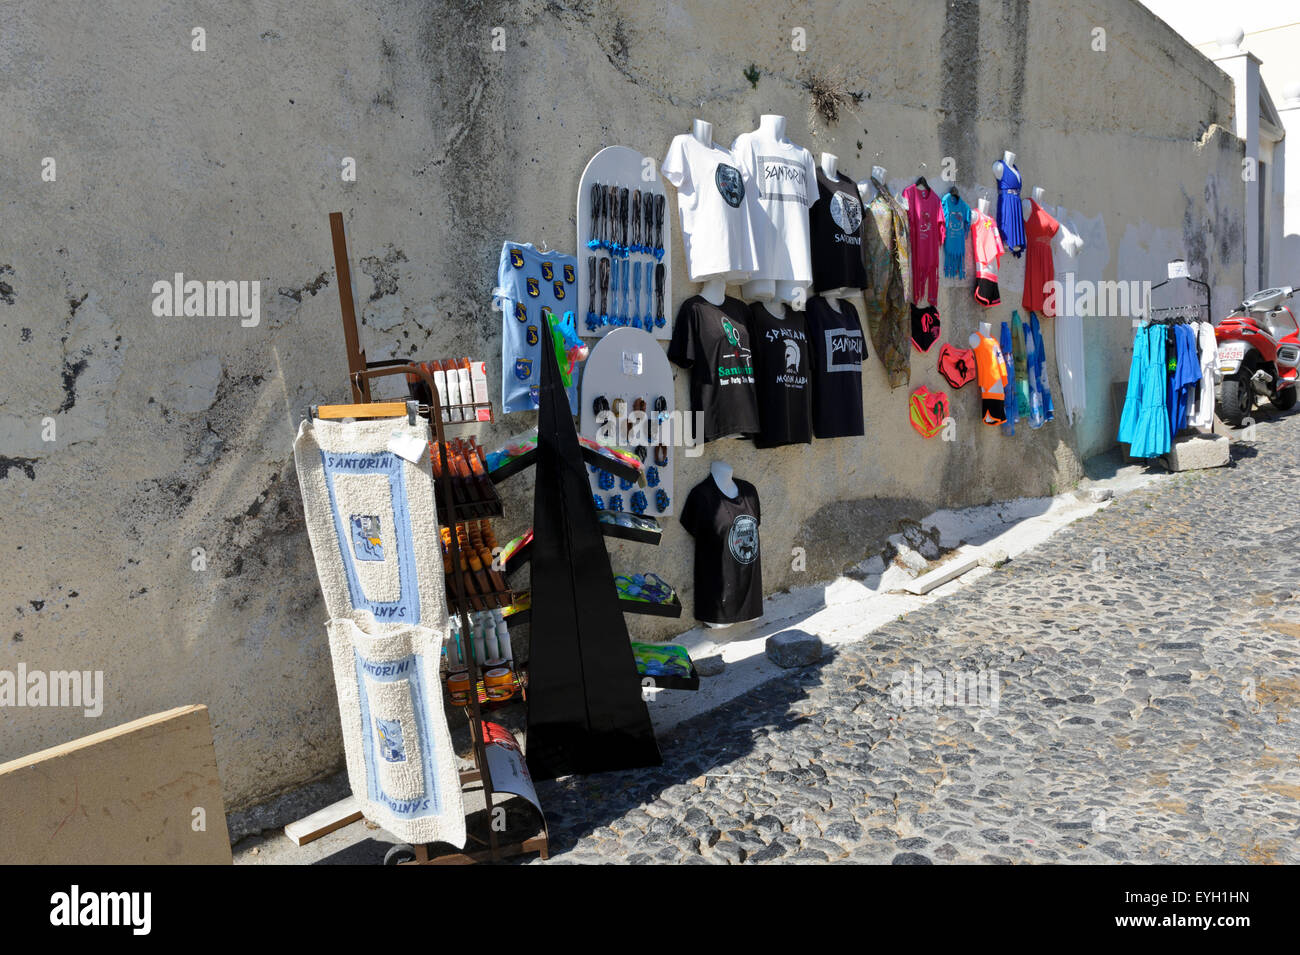 Clothes for sale in a narrow cobbled street in Fira, Santorini, Greece. - Stock Image